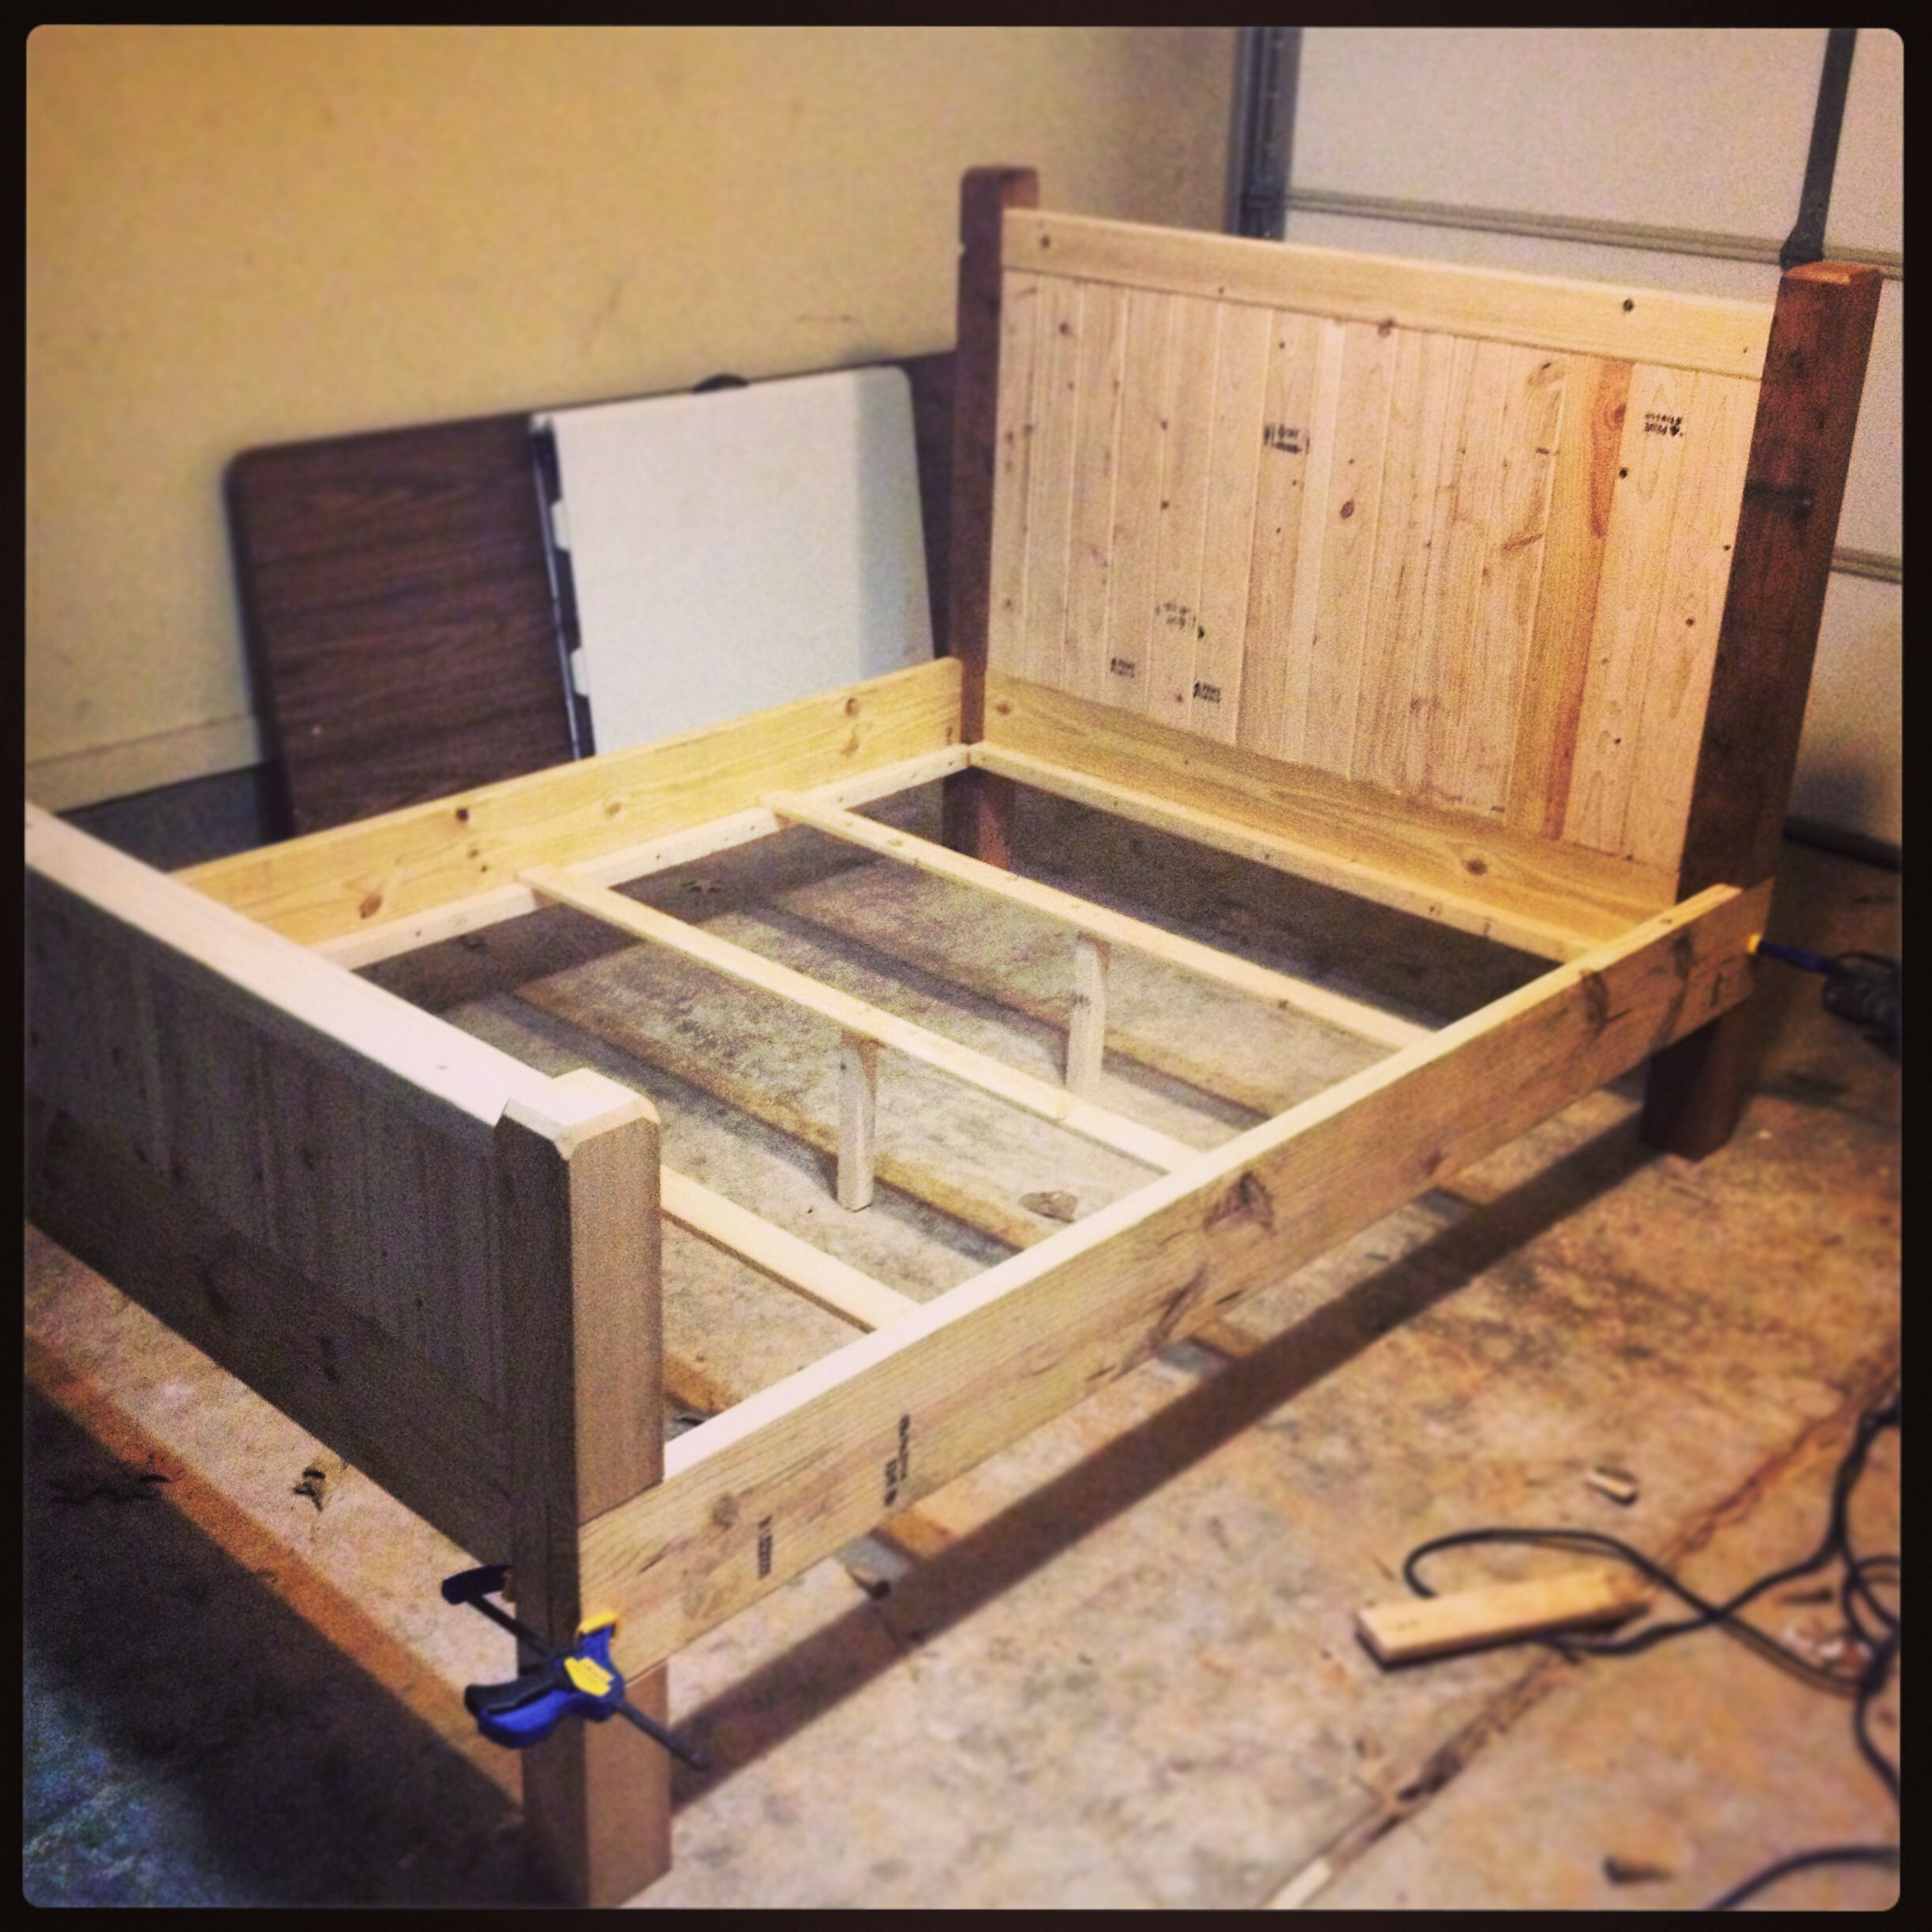 Wooden bed frame ideas - Diy Full Size Bed Frame Almost Finished Made With 2x4s 2x8s And 4x4